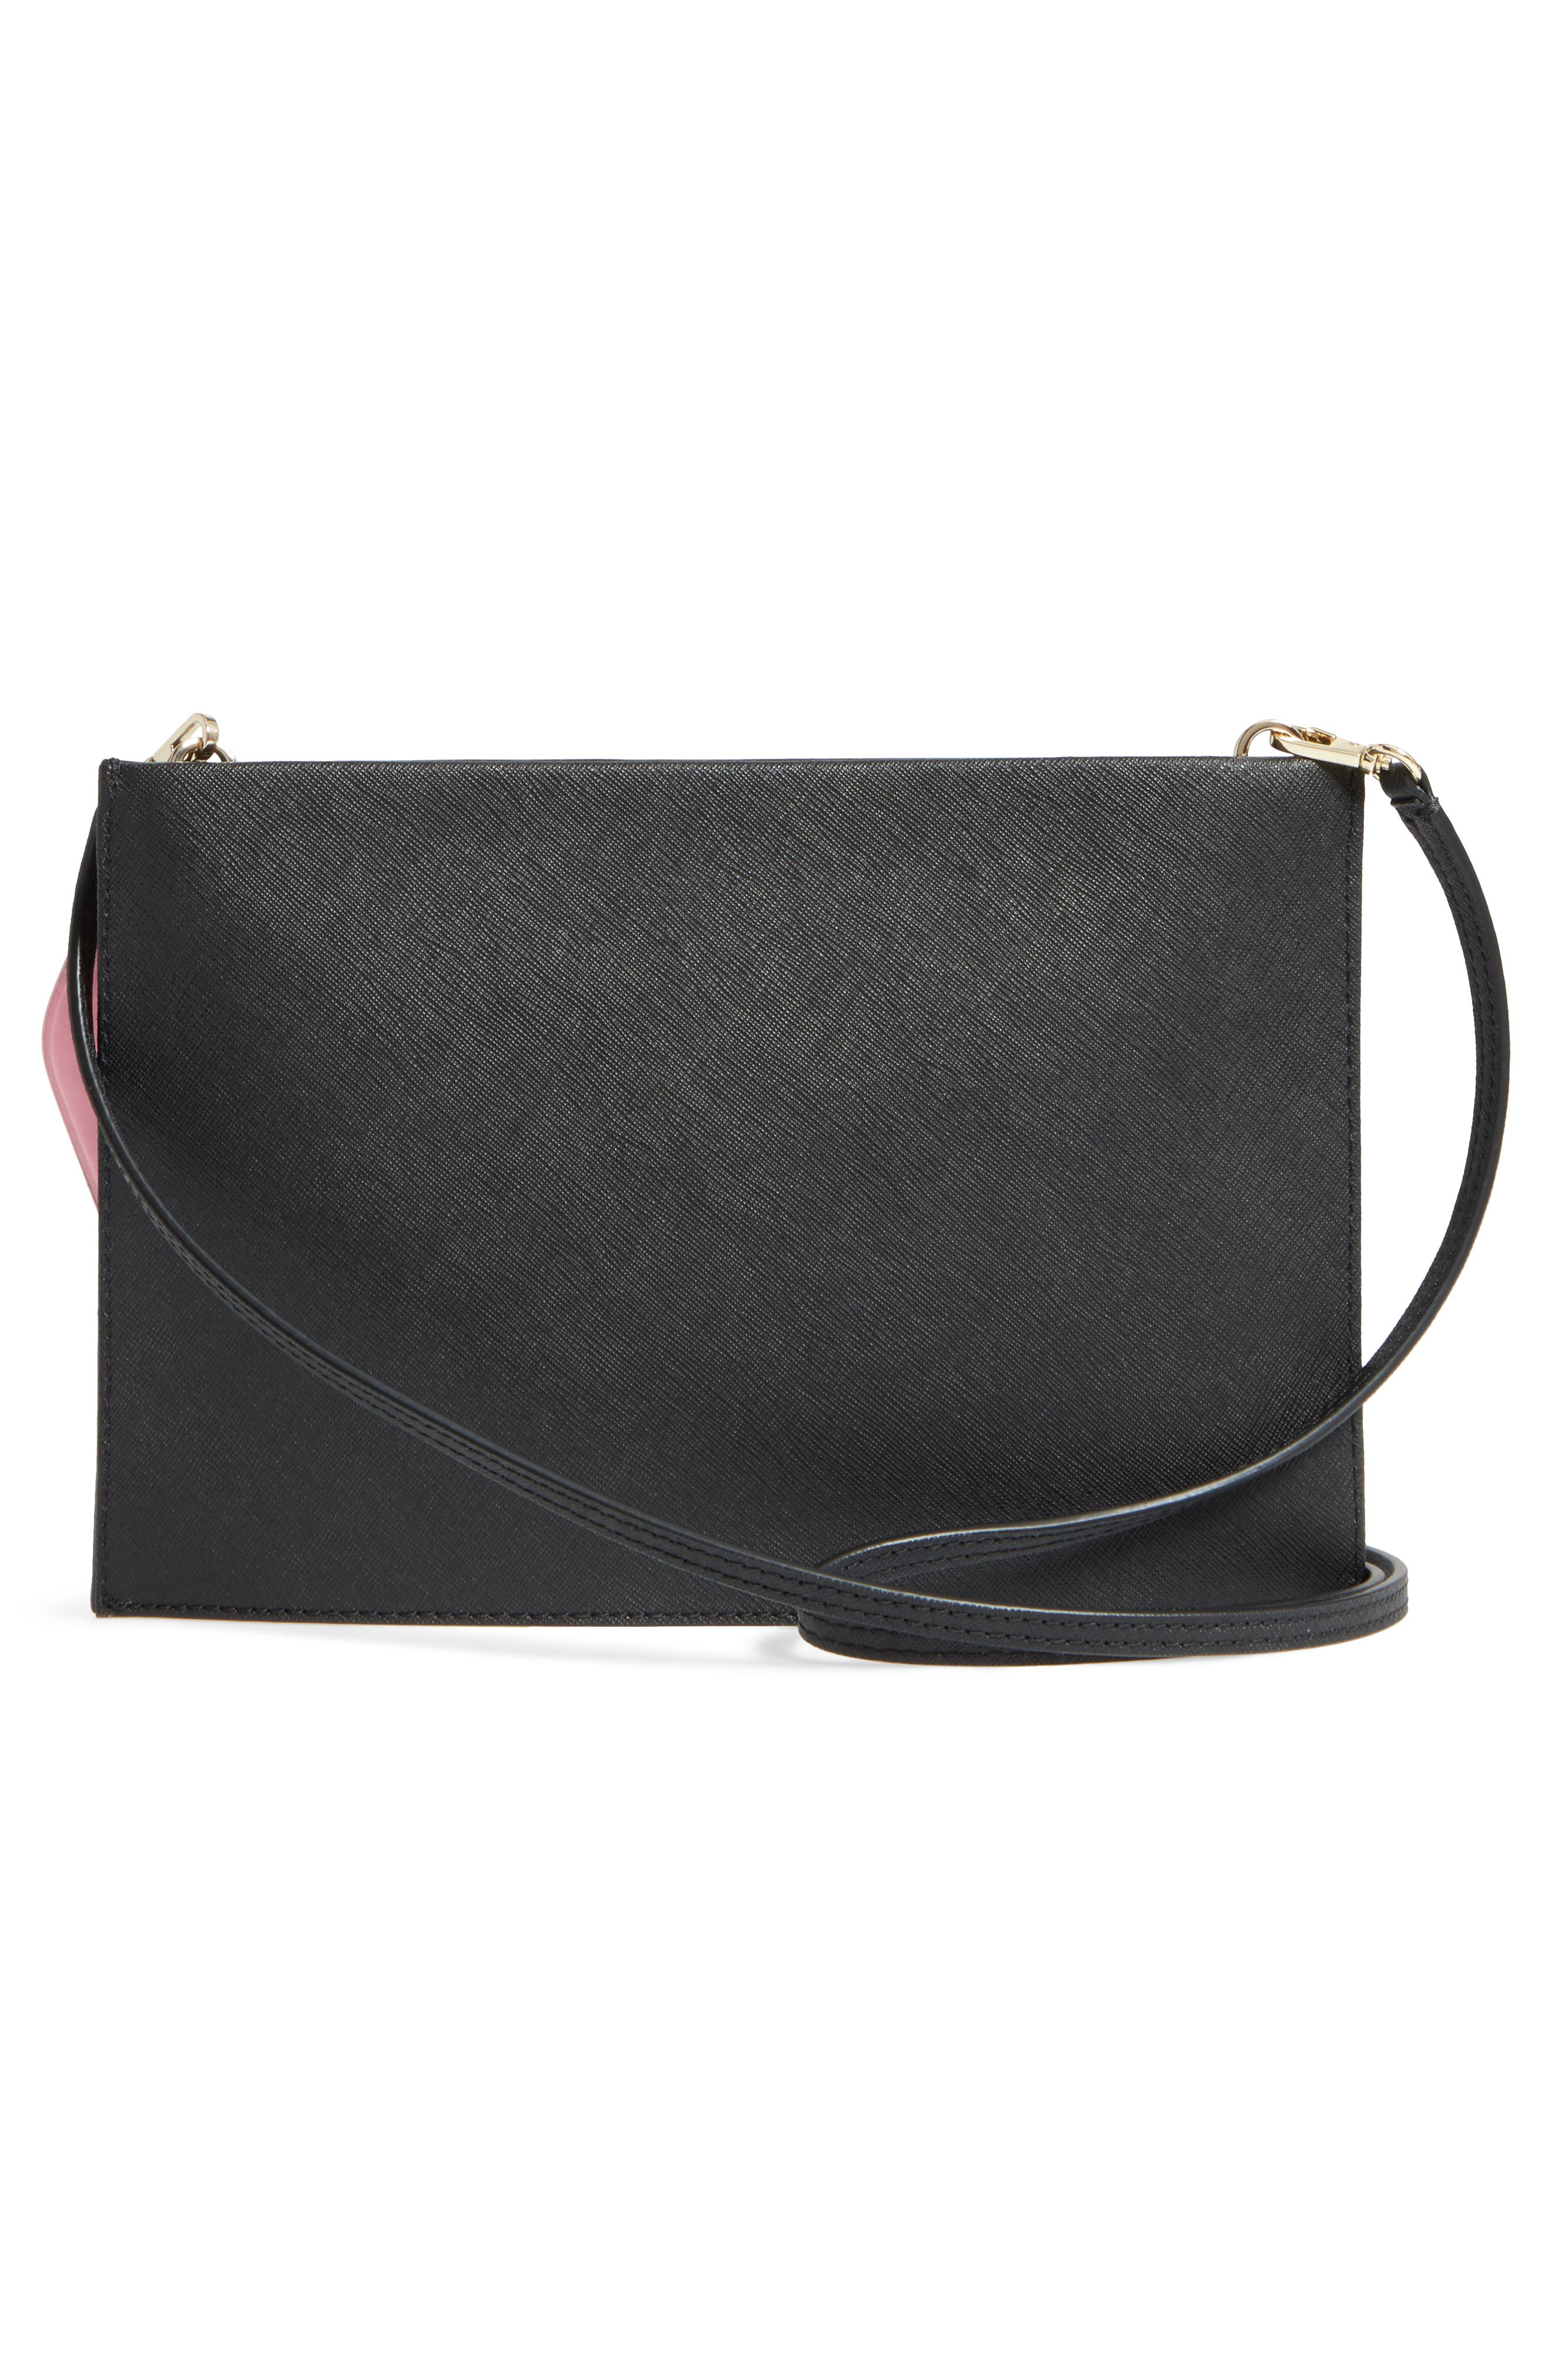 checking in – sima leather crossbody bag,                             Alternate thumbnail 3, color,